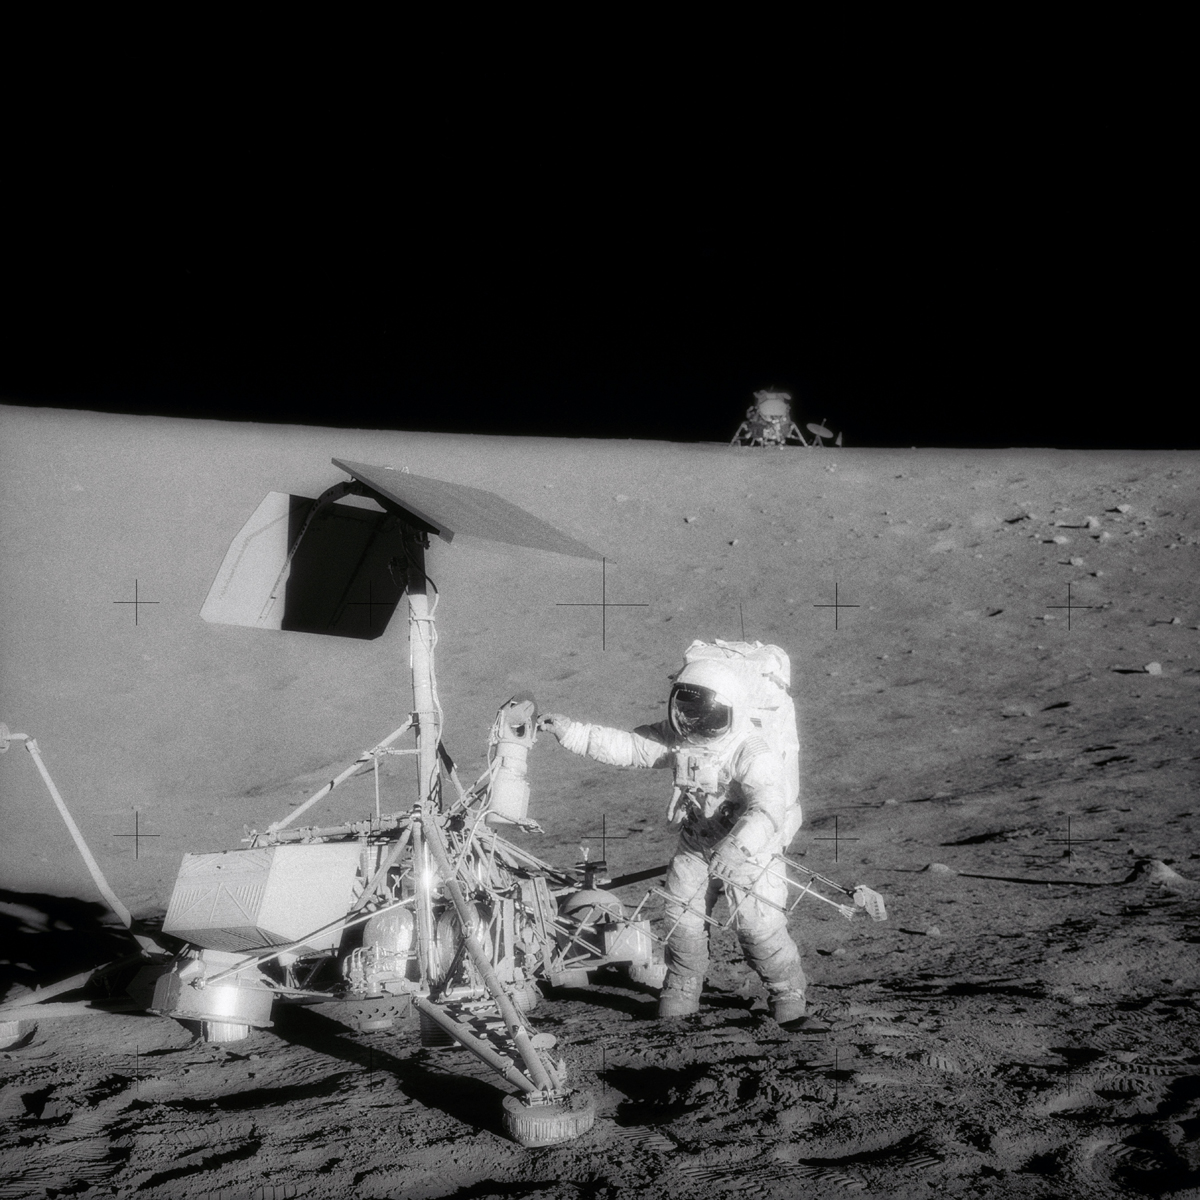 A television camera and several other pieces were taken from Surveyor 3 and brought back to Earth for scientific examination. Here, Apollo 12 moonwalker, Pete Conrad, examines the Surveyor's TV camera before detaching the gear.